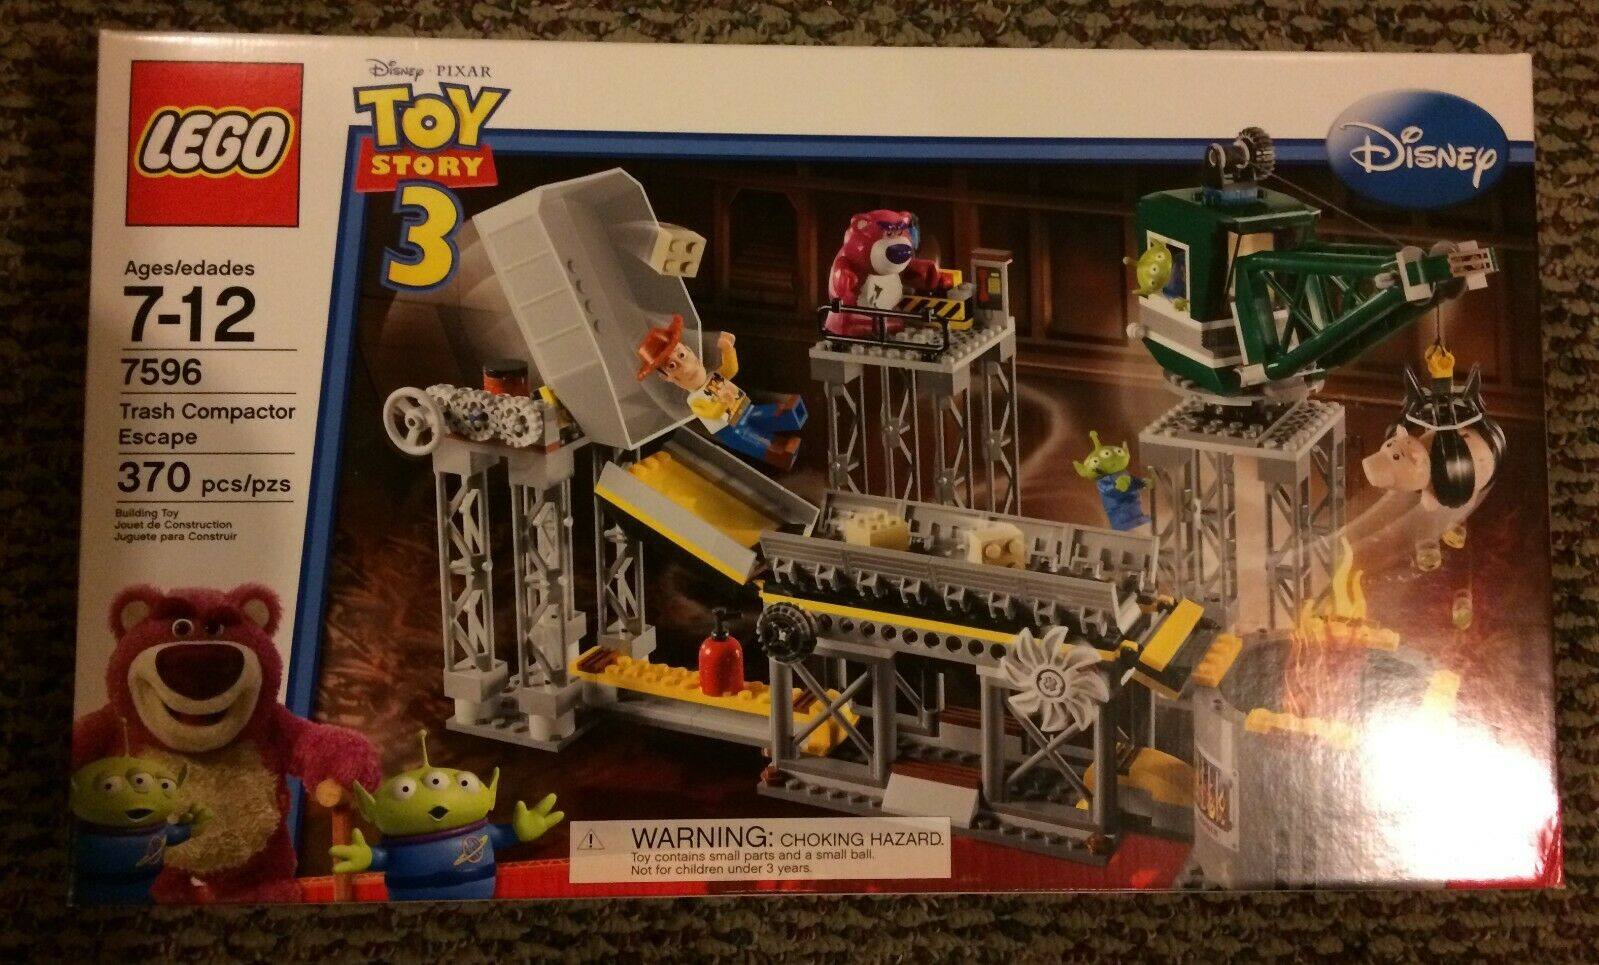 7596 toy story trash compactor escape brand